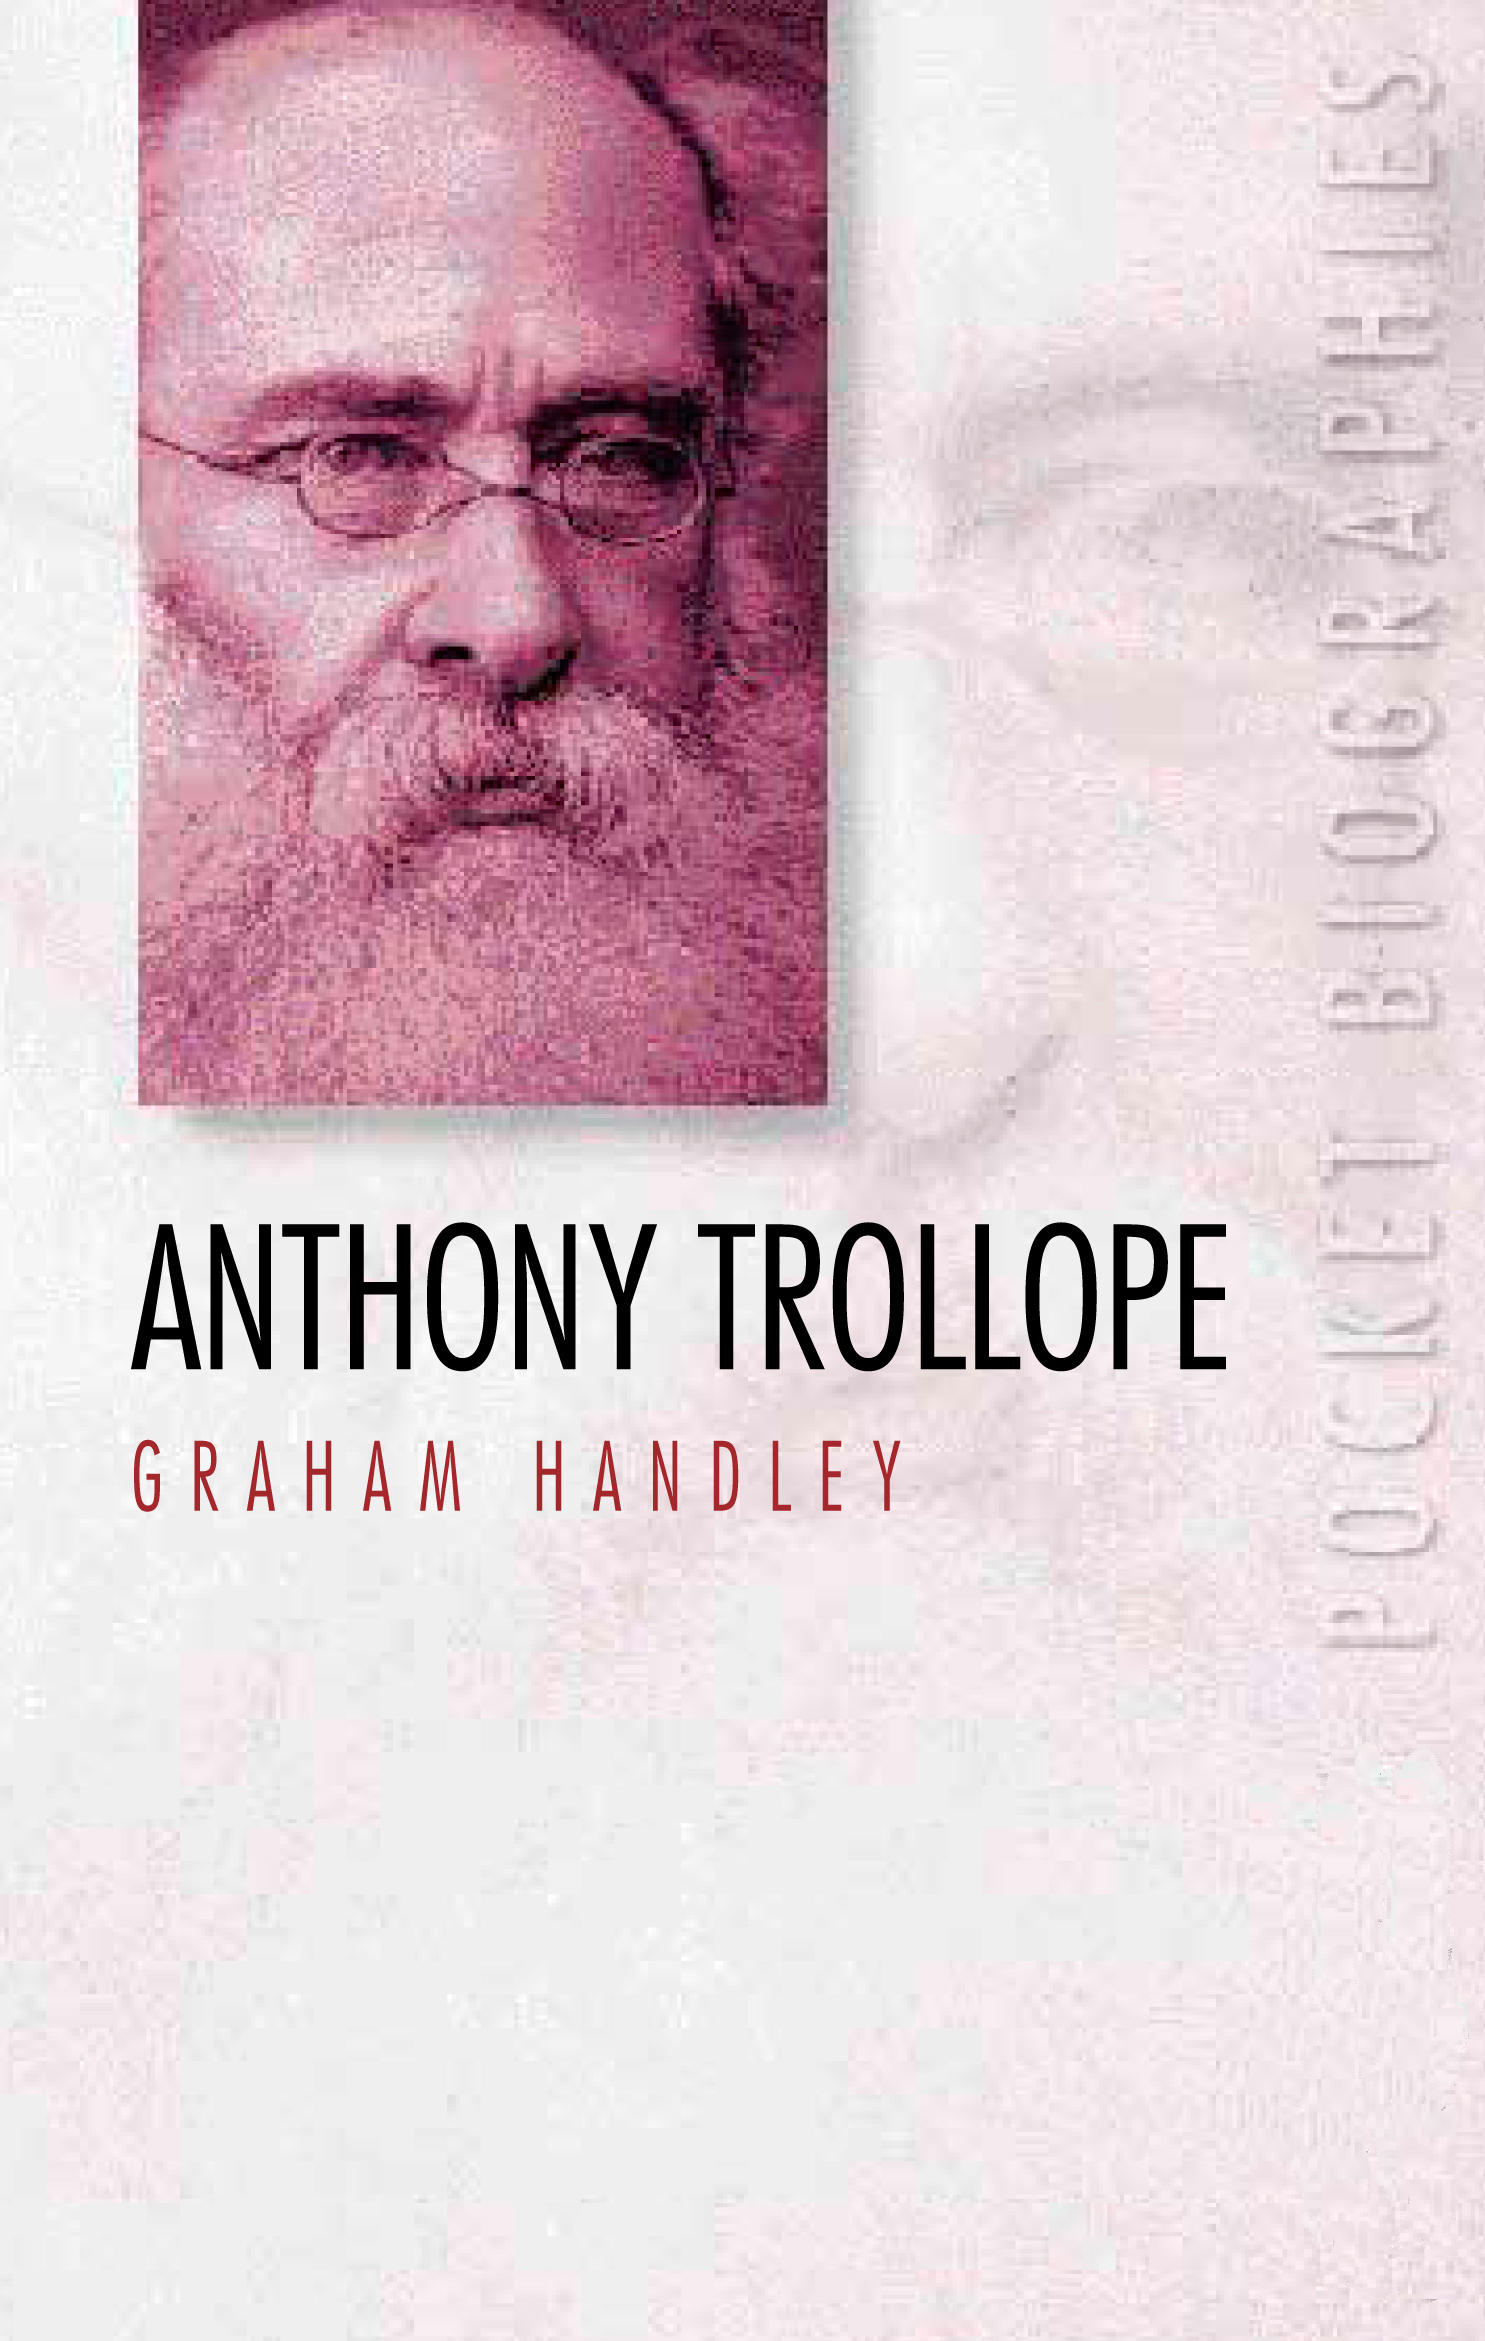 Anthony Trollope By: Graham Handley